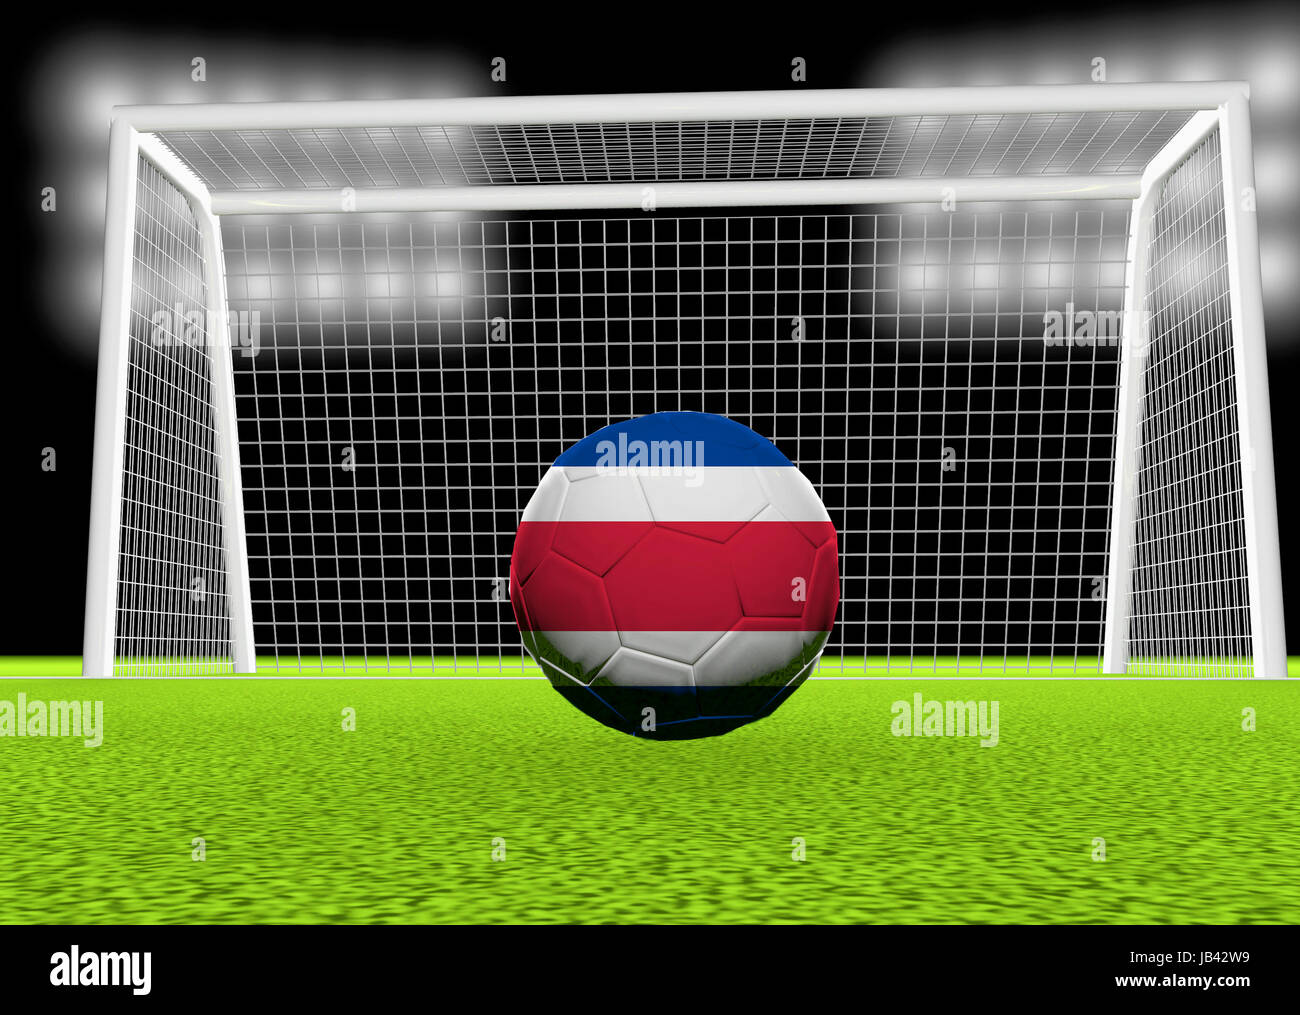 Soccer Ball Flag Costa Rica Imágenes De Stock   Soccer Ball Flag ... 91dde8f60b4e8